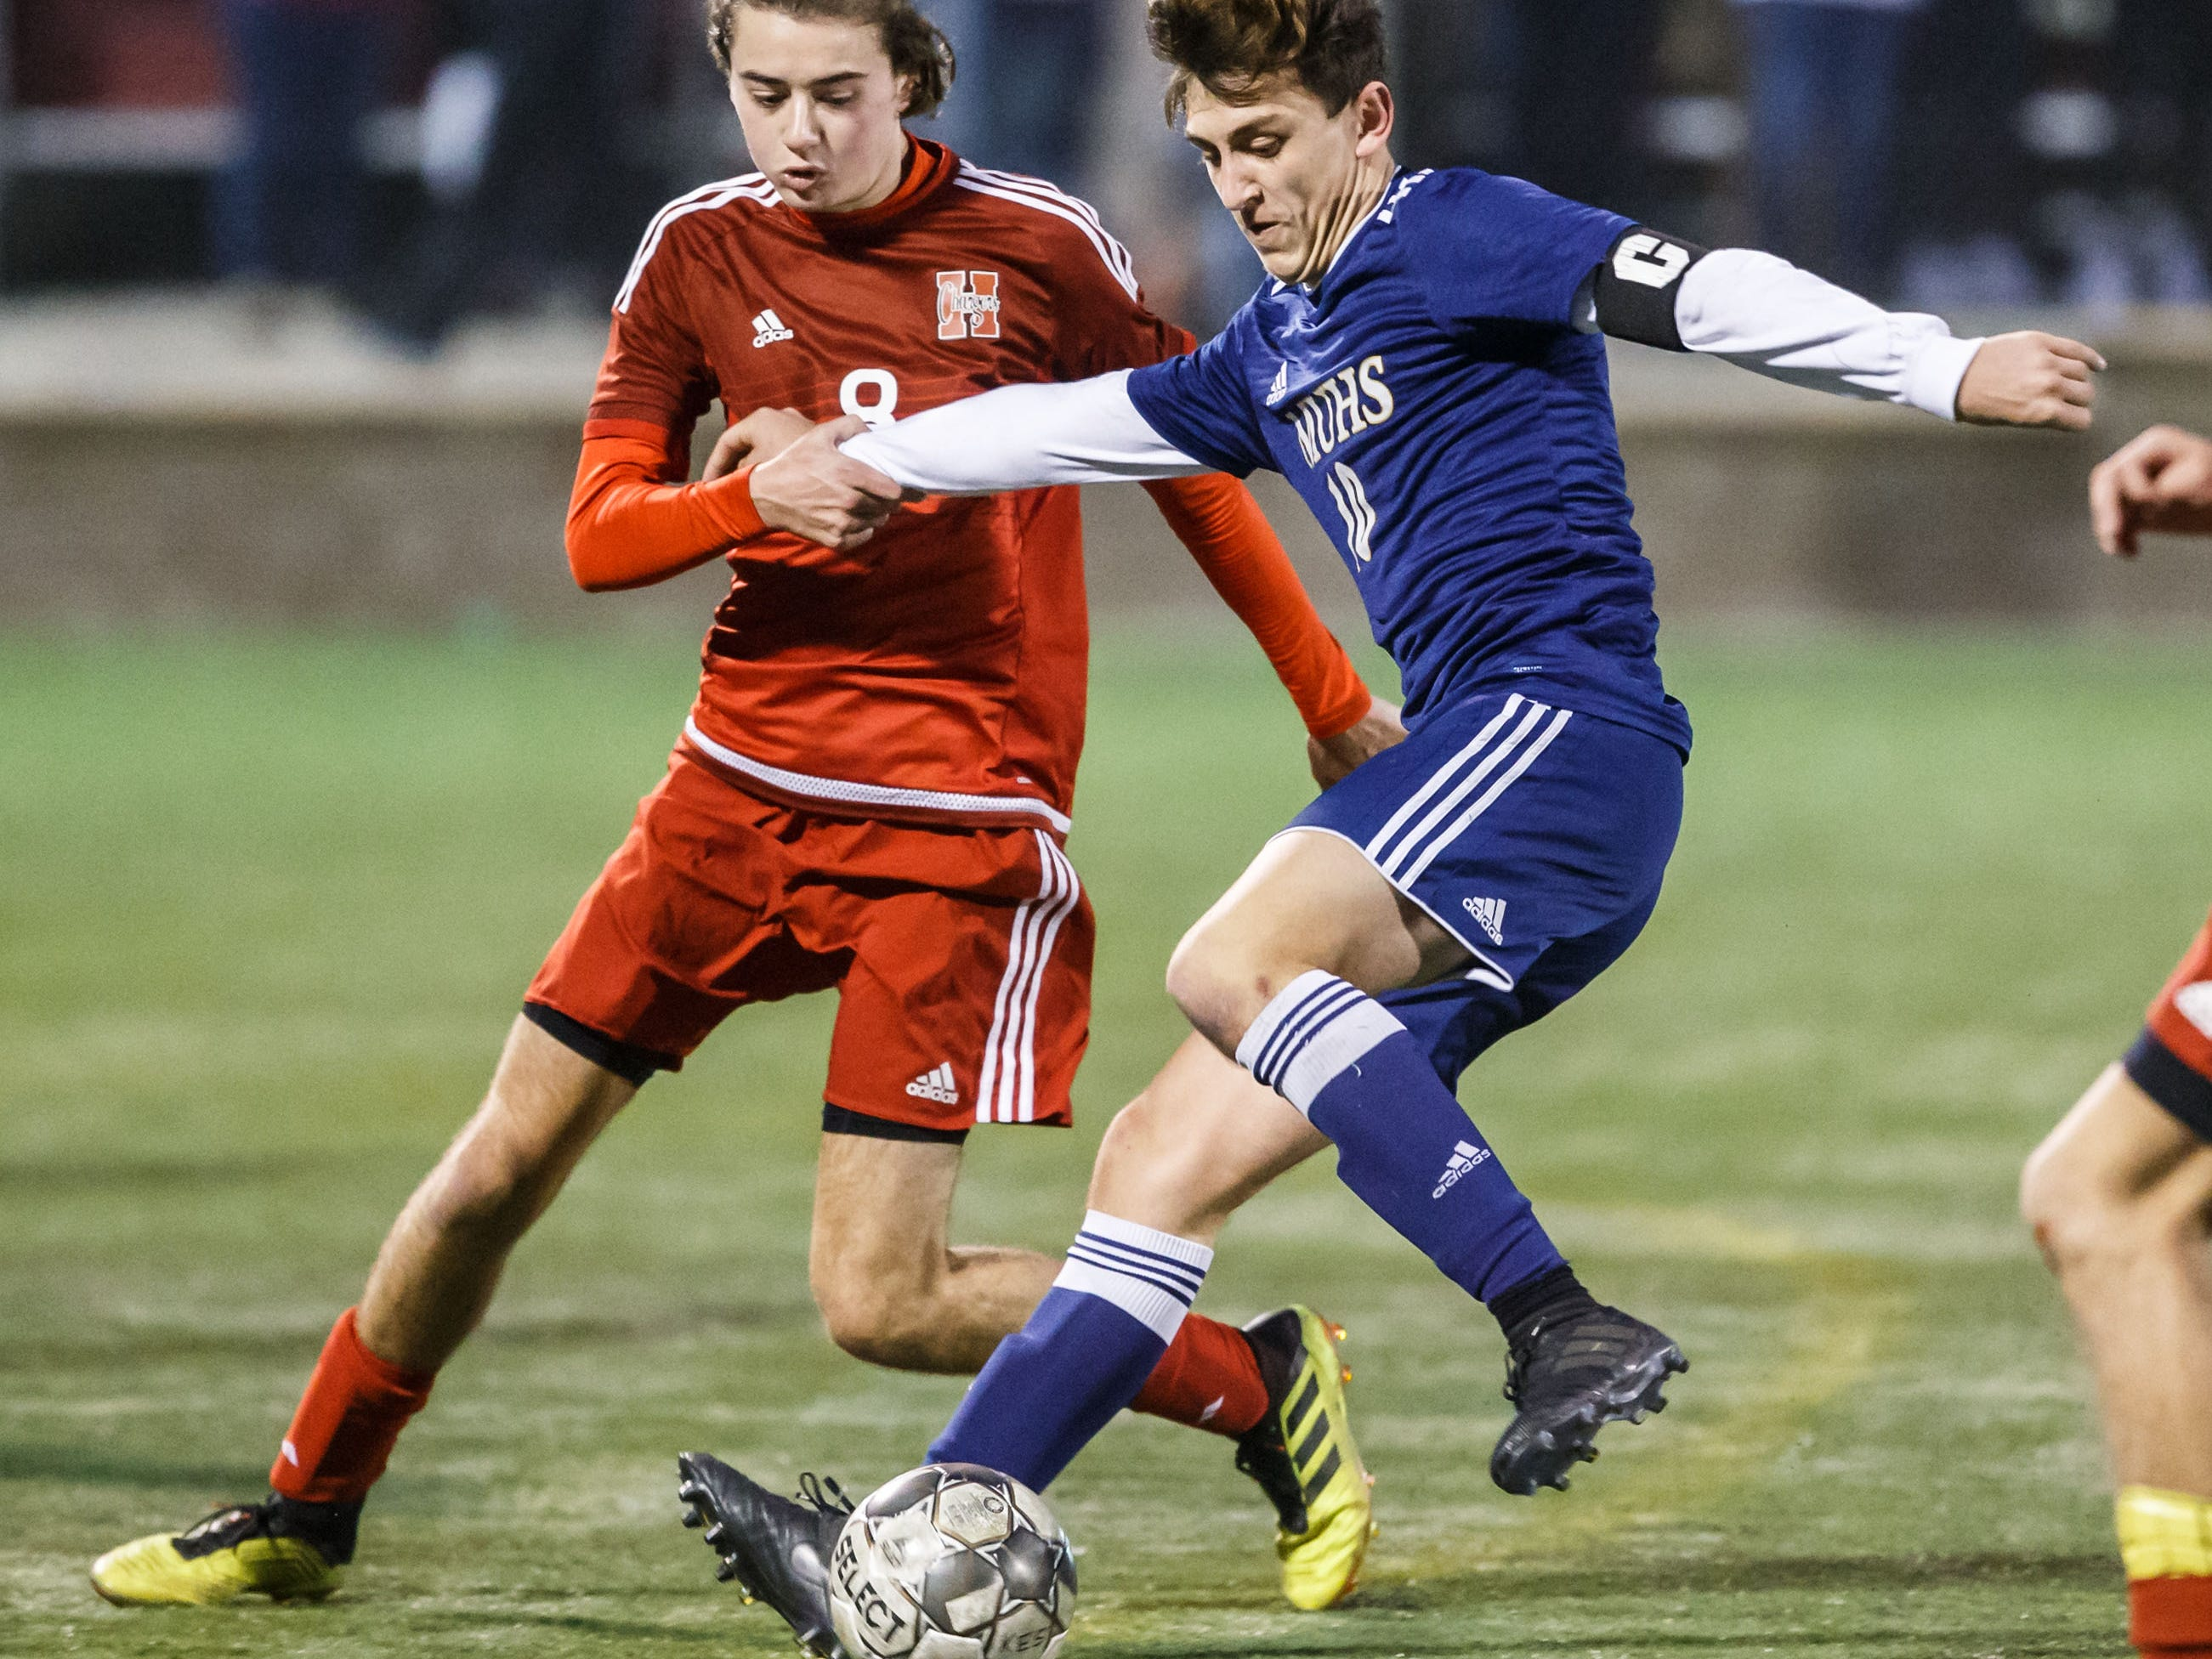 A Marquette soccer standout earns a yellow card in the state final. Consider it the price for honoring a fallen friend.